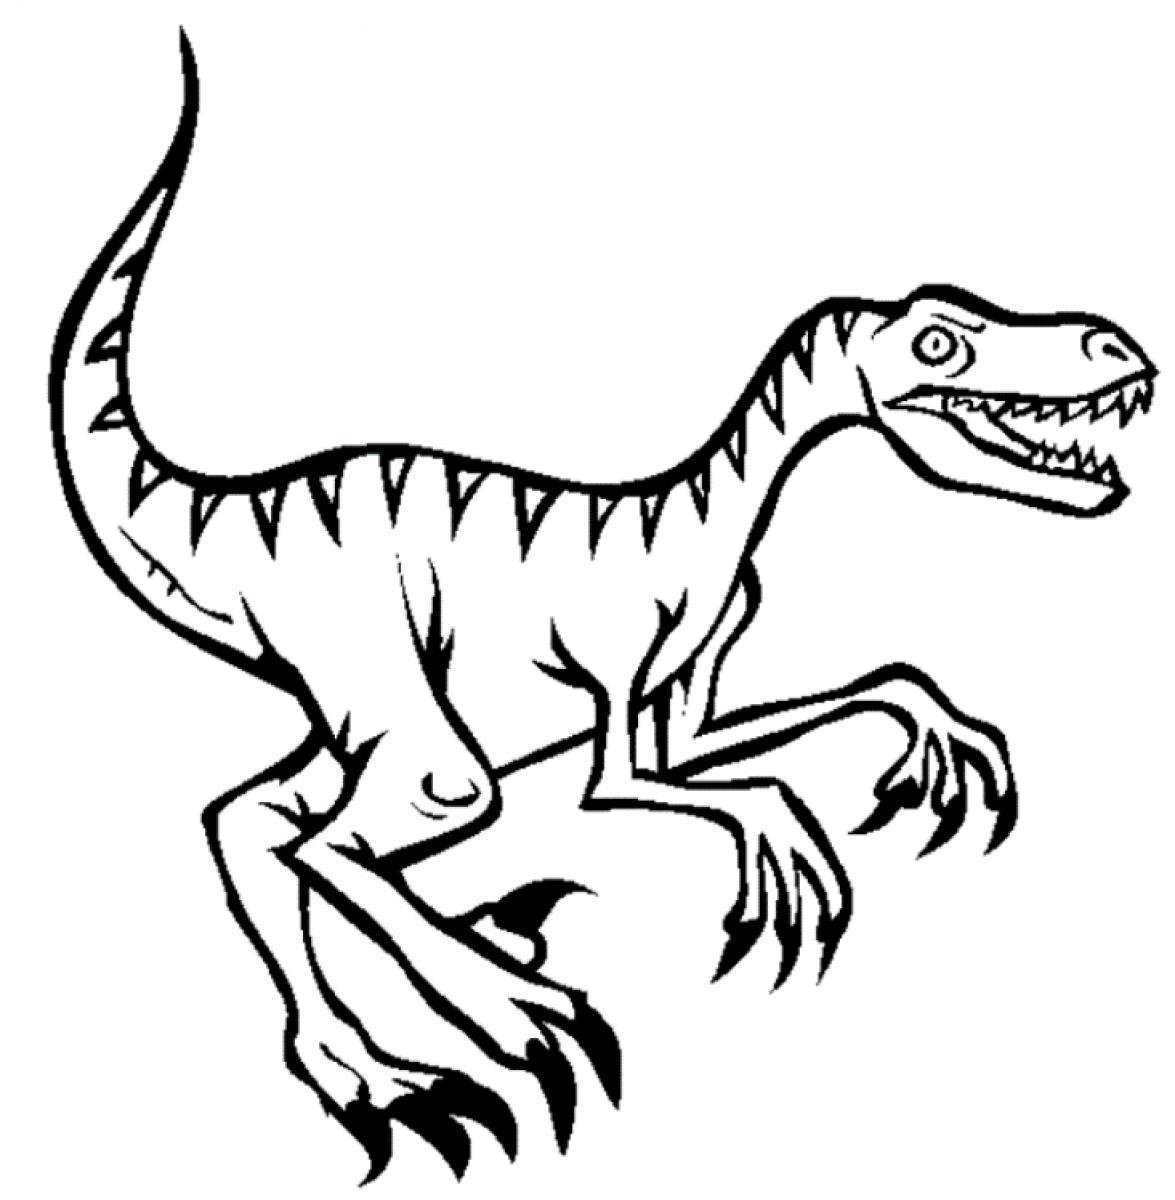 food coloring pages - free printable dinosaur coloring pages